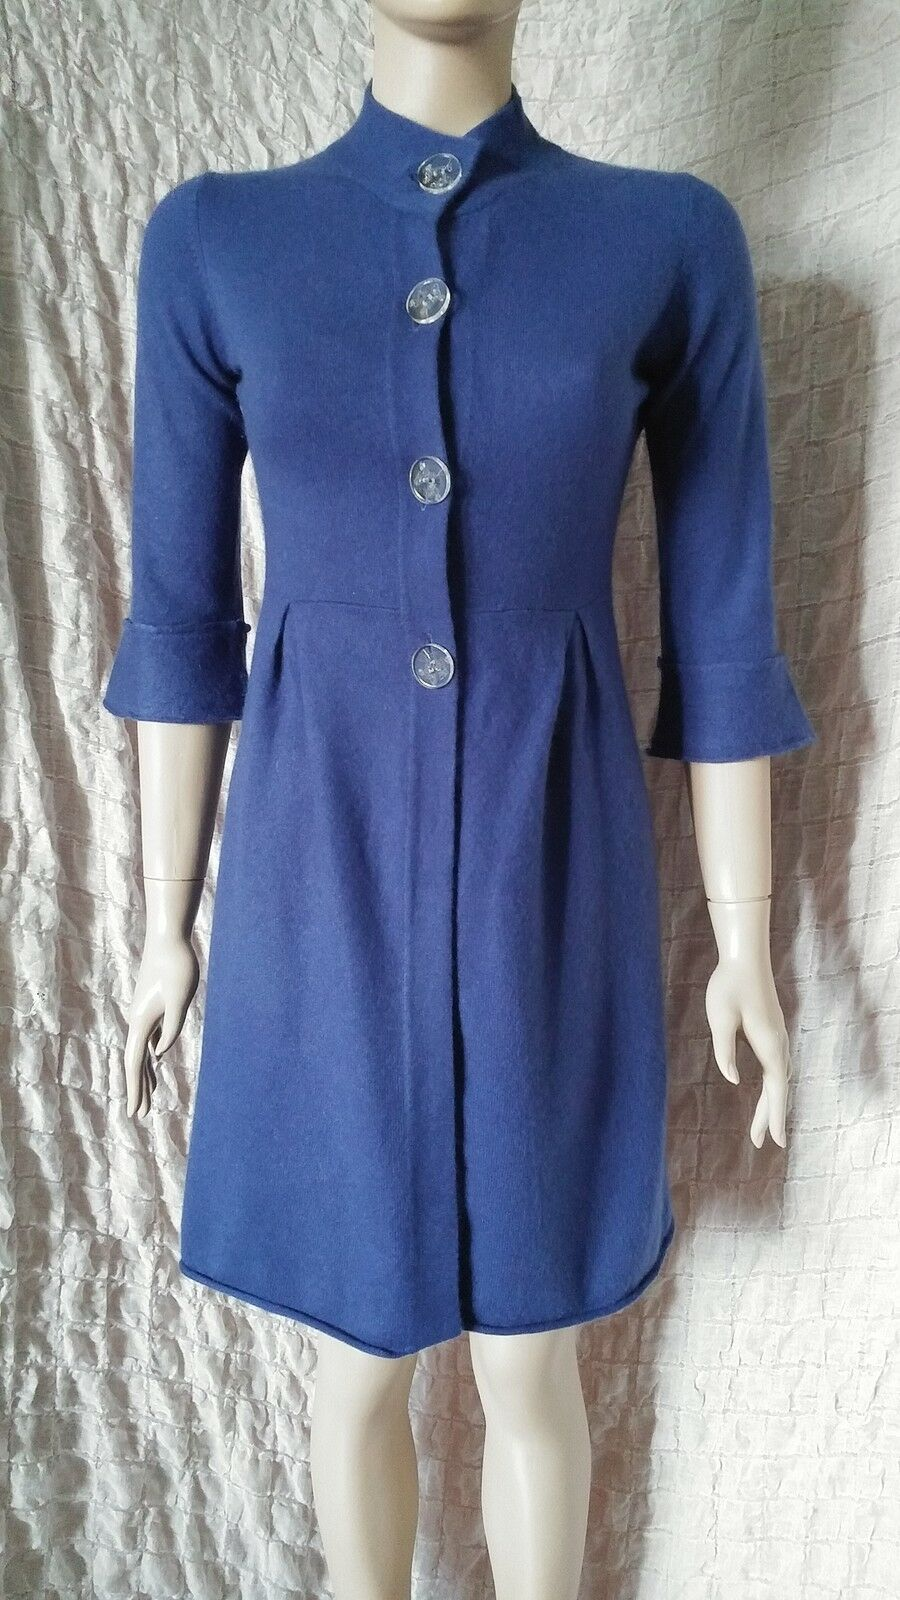 FTC 100% cashmere royal bluee longline cardigan dress size S